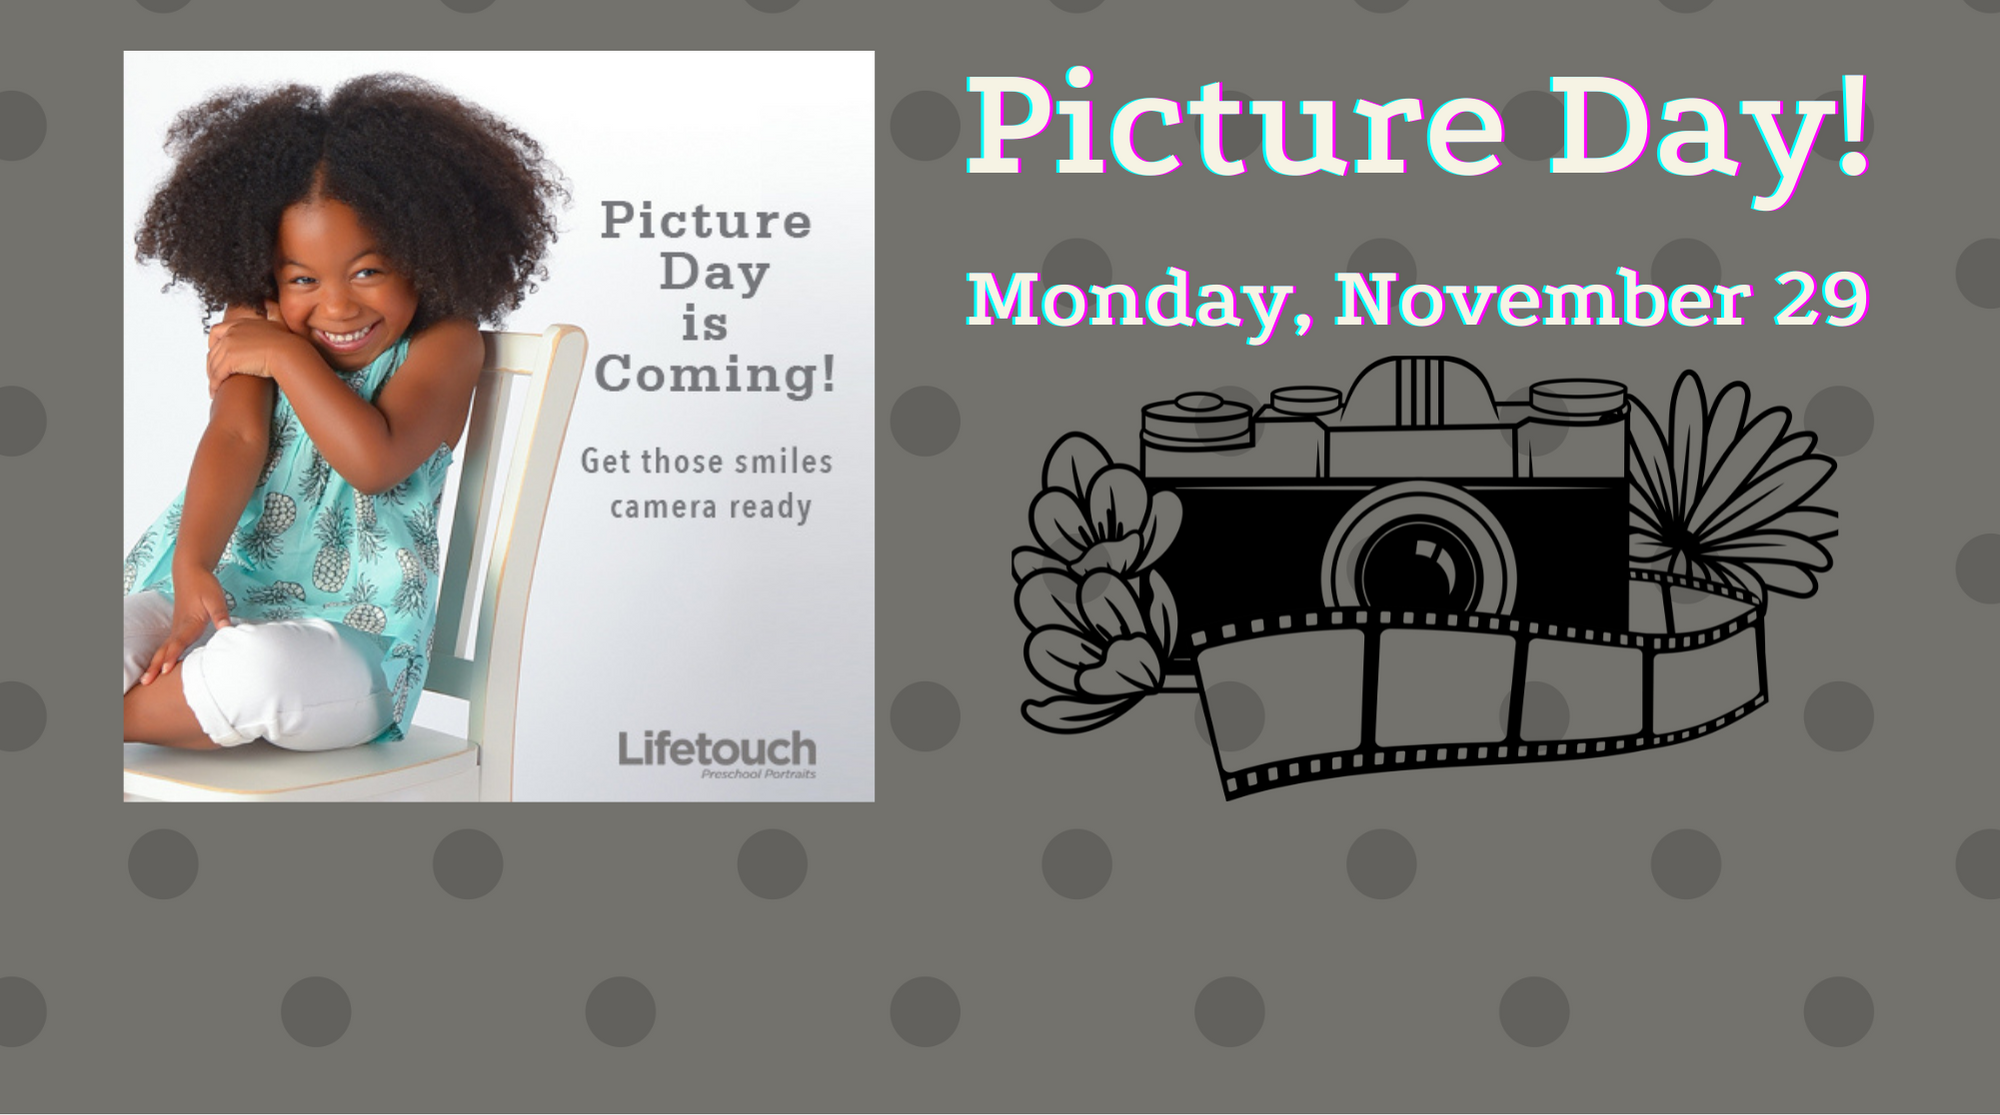 Picture that says Picture Day is Monday, November 29